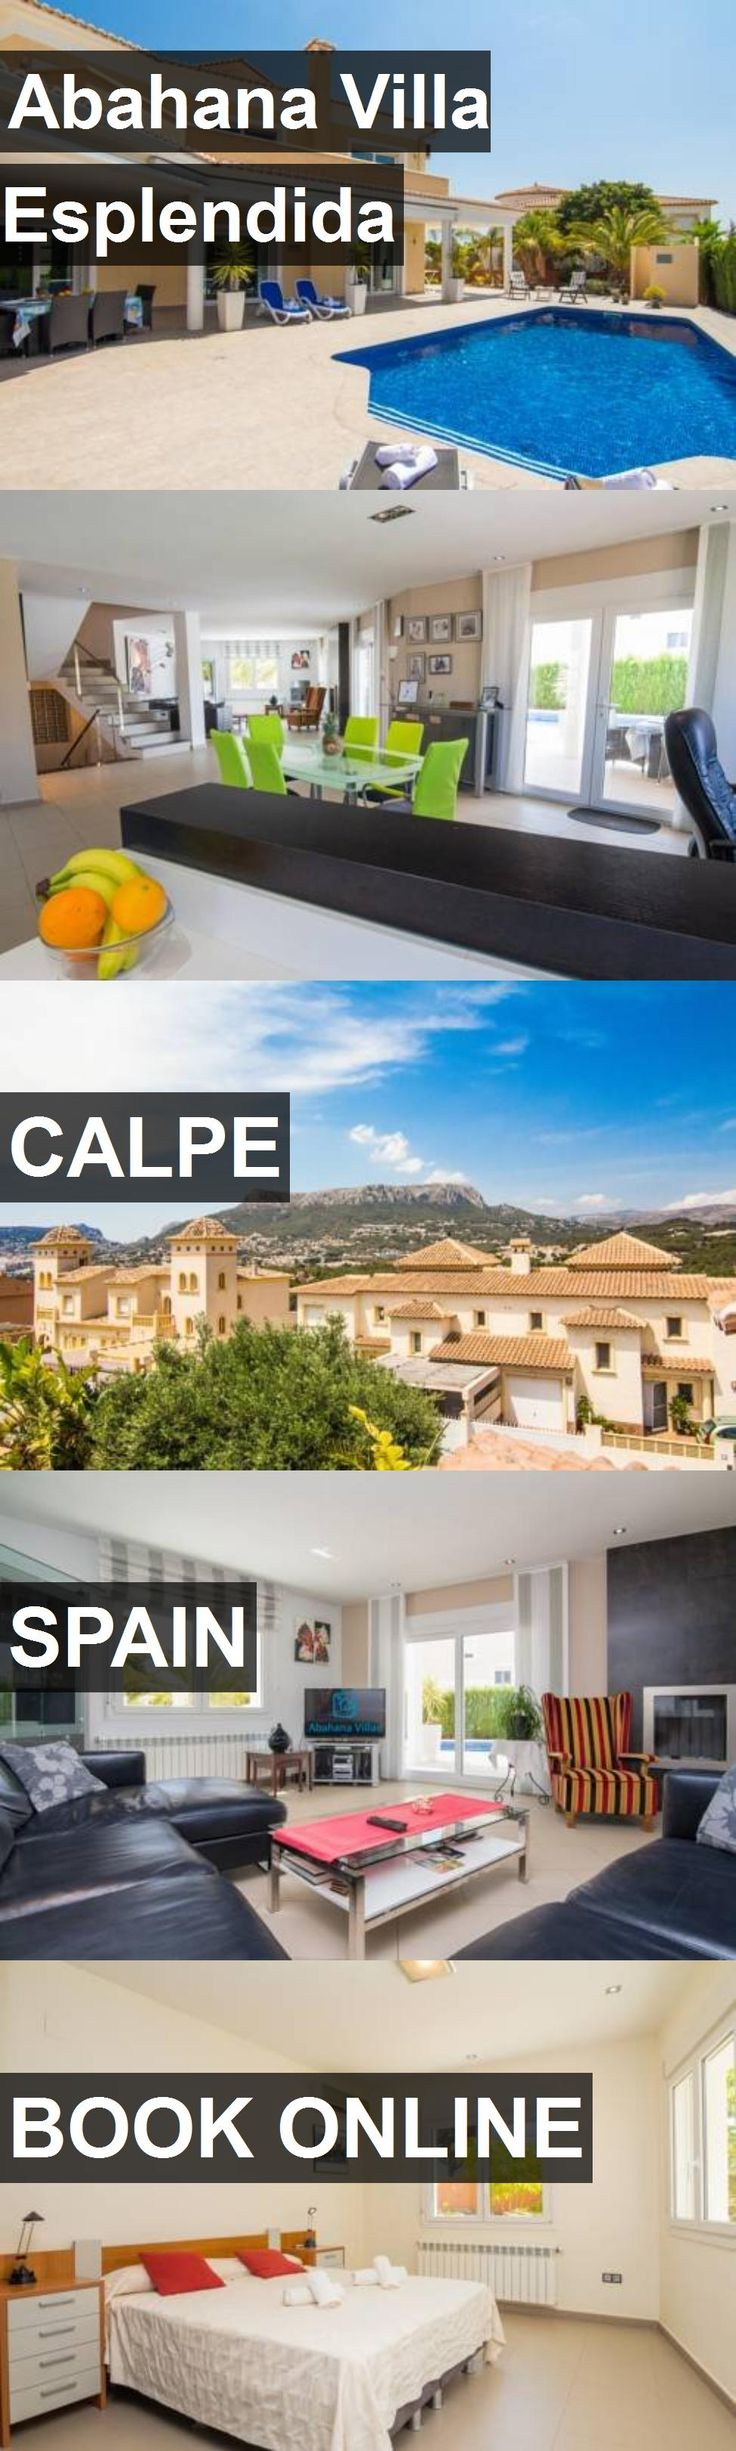 Hotel Abahana Villa Esplendida in Calpe, Spain. For more information, photos, reviews and best prices please follow the link. #Spain #Calpe #AbahanaVillaEsplendida #hotel #travel #vacation